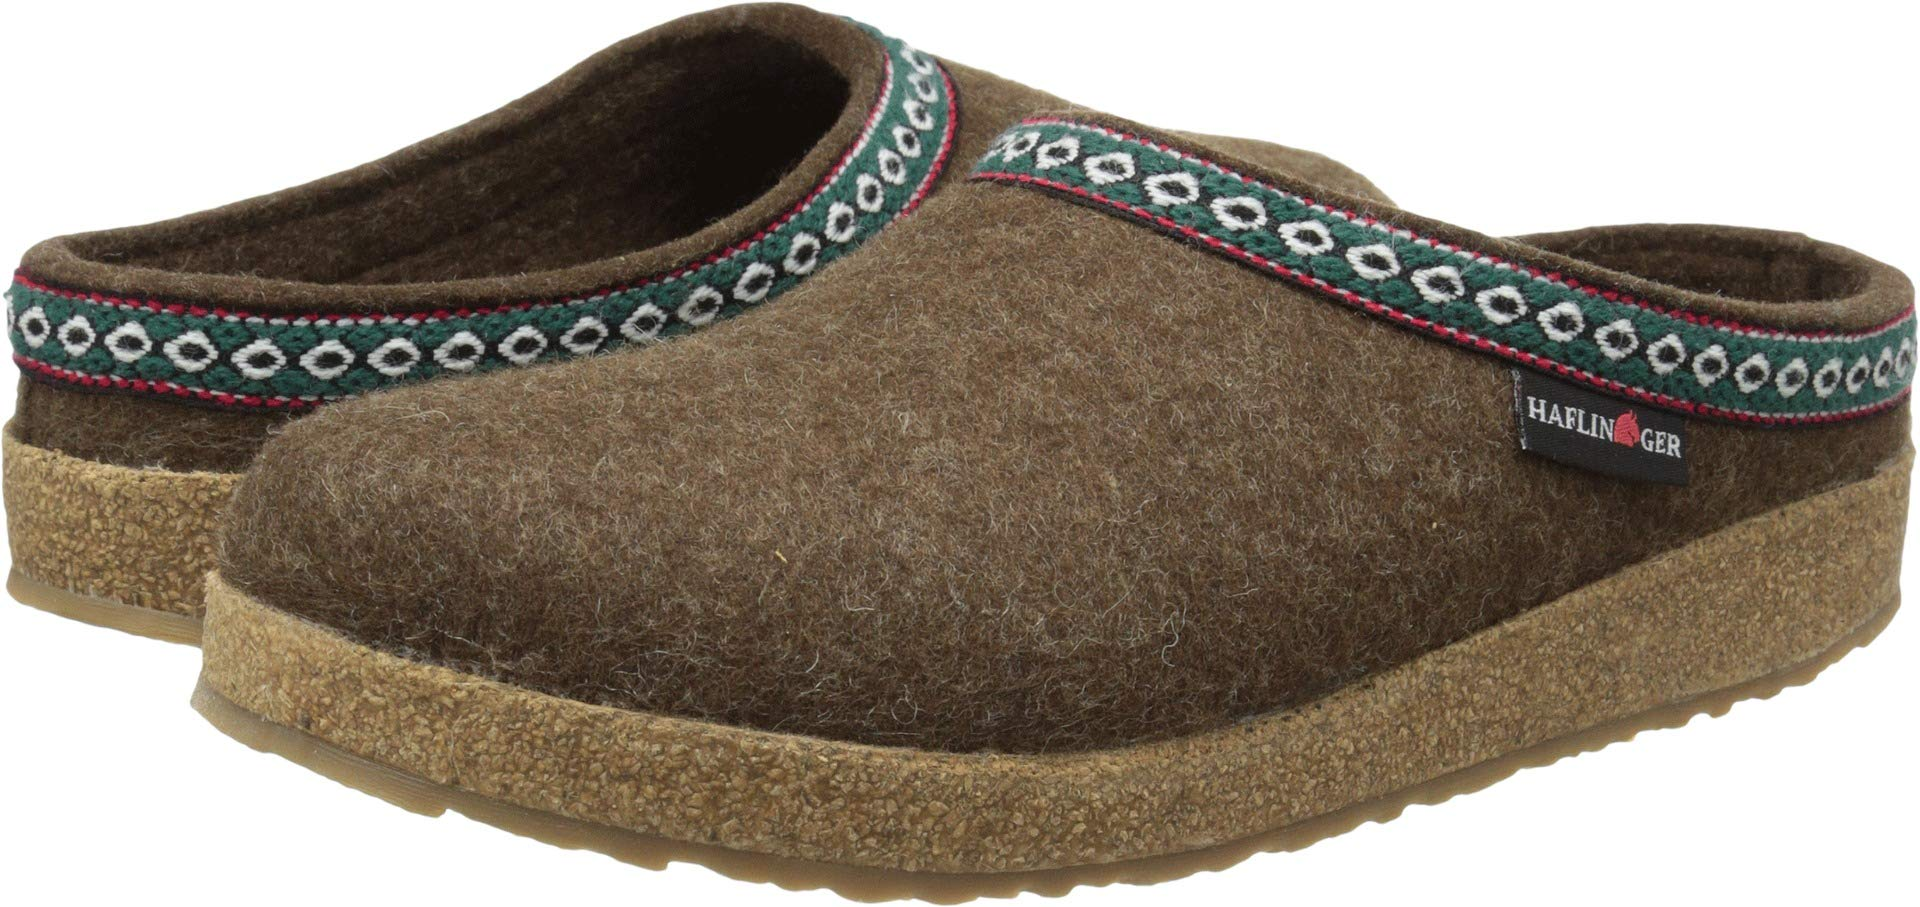 Haflinger GZ65 Classic Grizzly Clog, Chocolate, 9 M US Women's/7 M US Men's / 40 EU